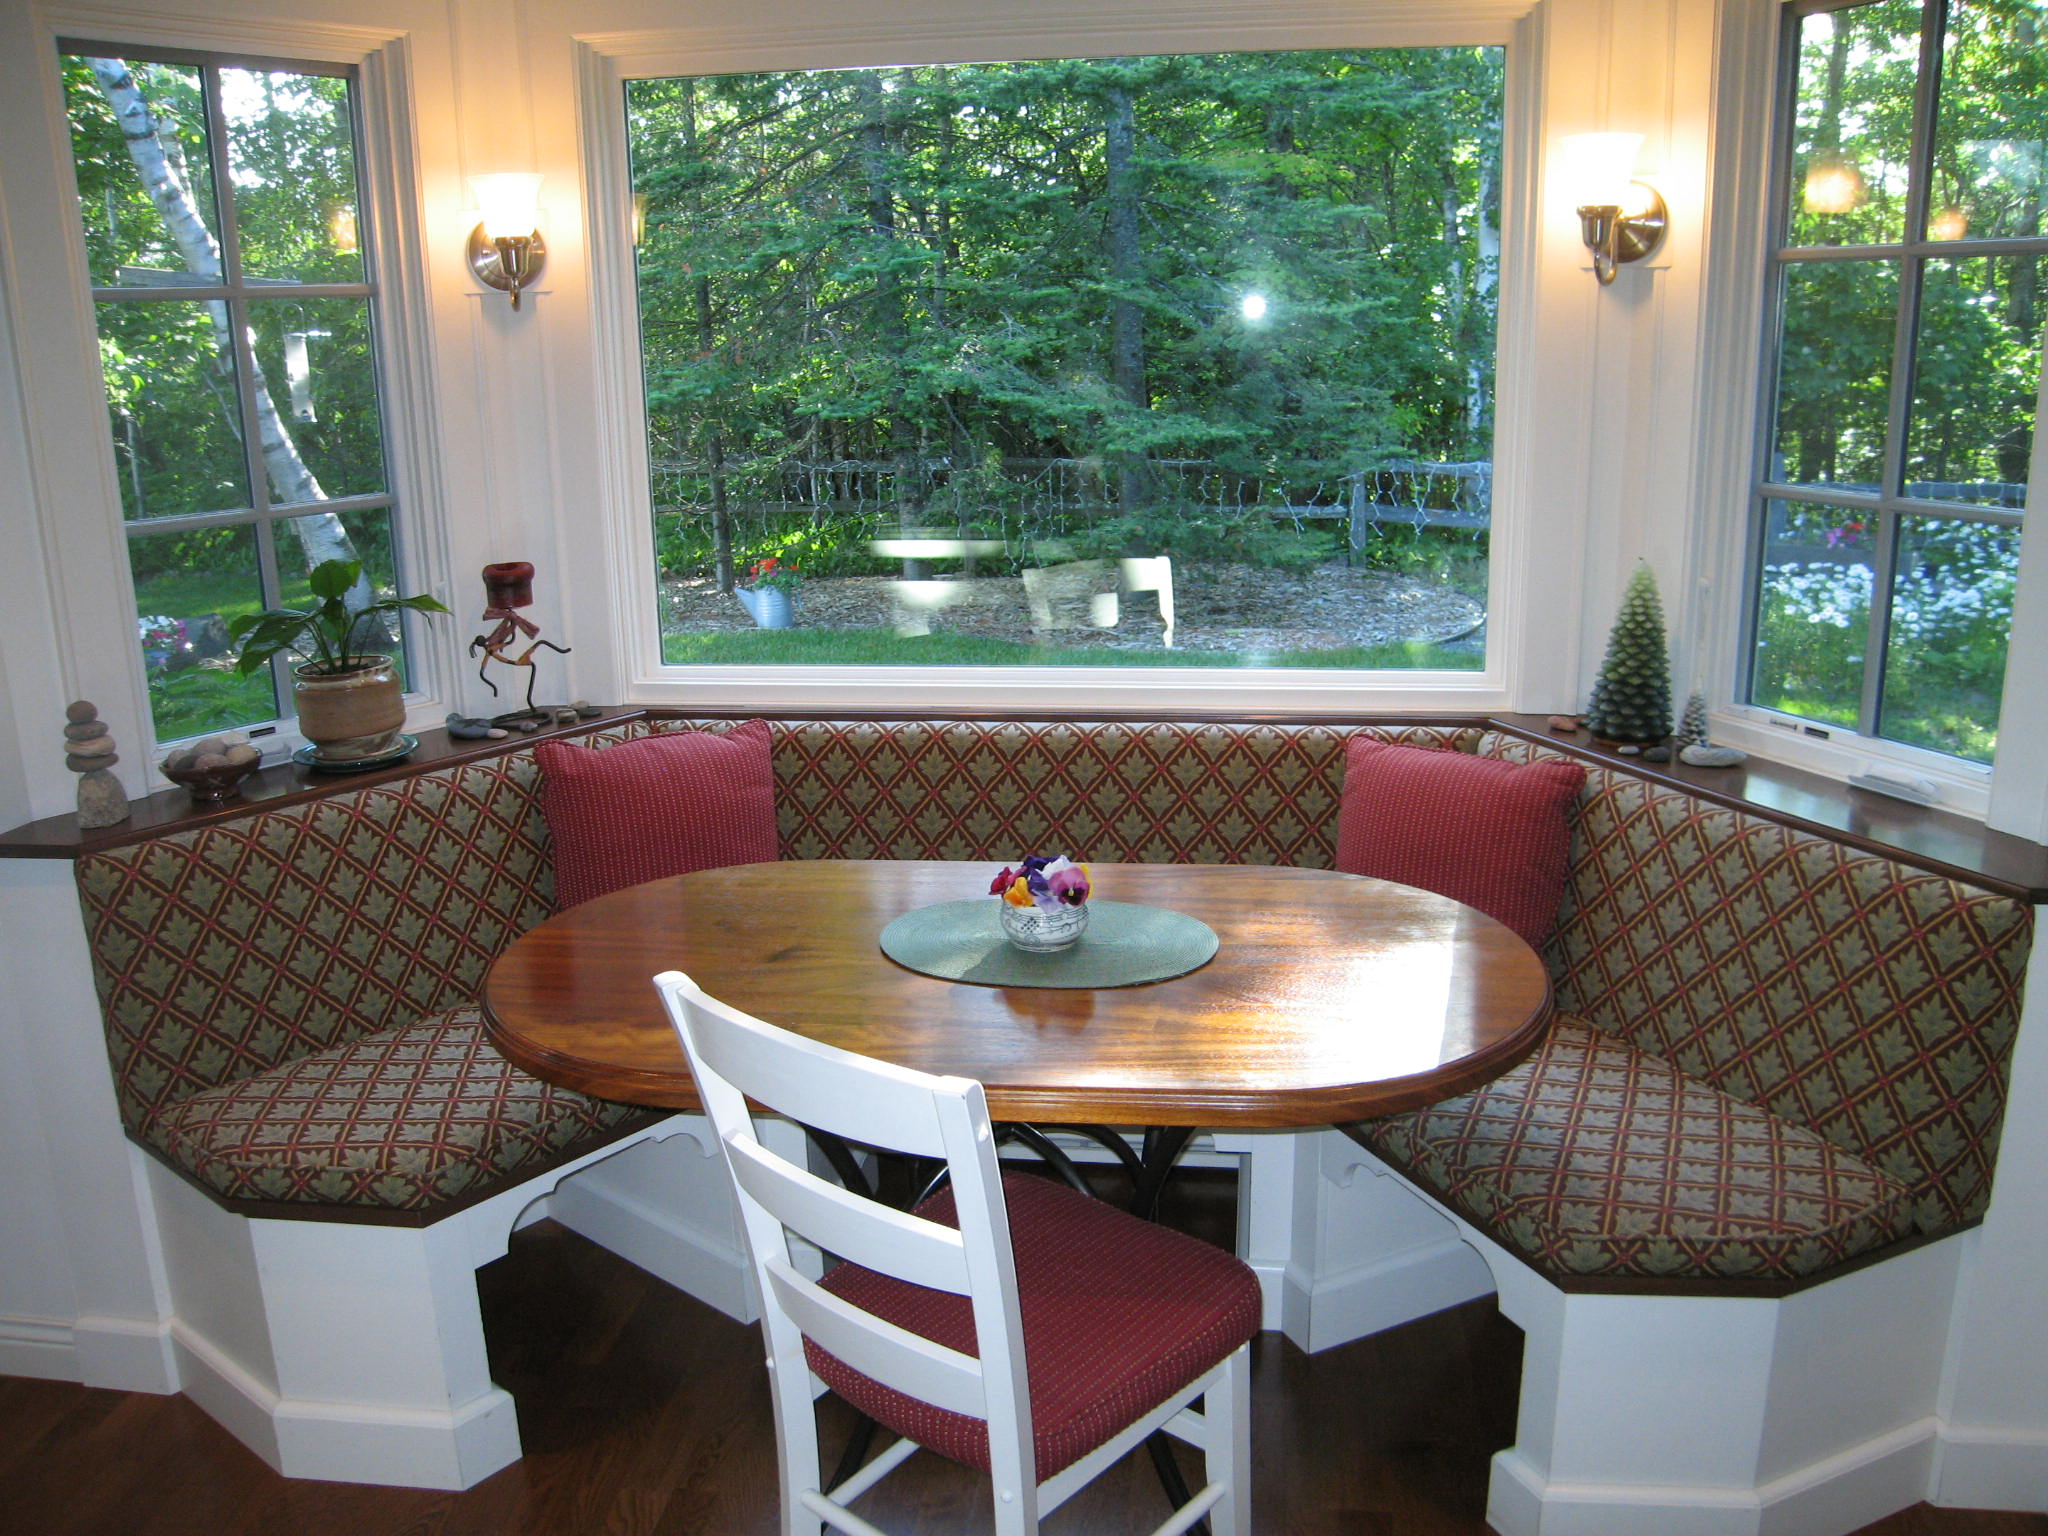 Banquette seating maximize family togetherness in the kitchen Kitchen bench seating